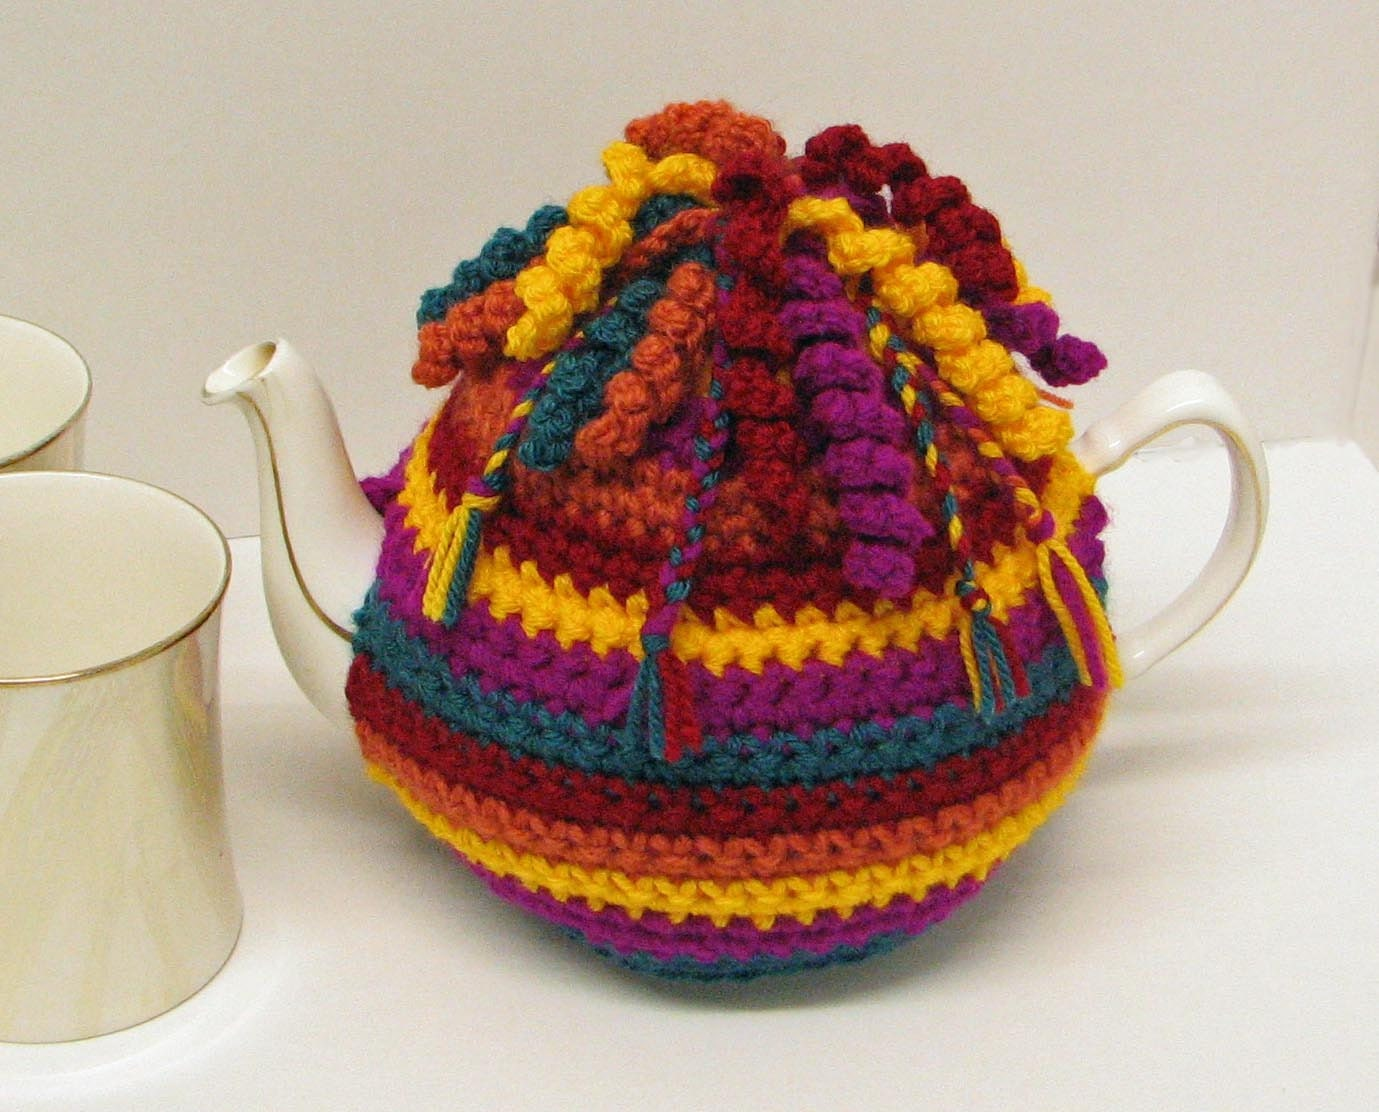 Free Easy Tea Cosy Crochet Pattern : Crochet pattern for Tea Cosy / Cozy trimmed with spirals and